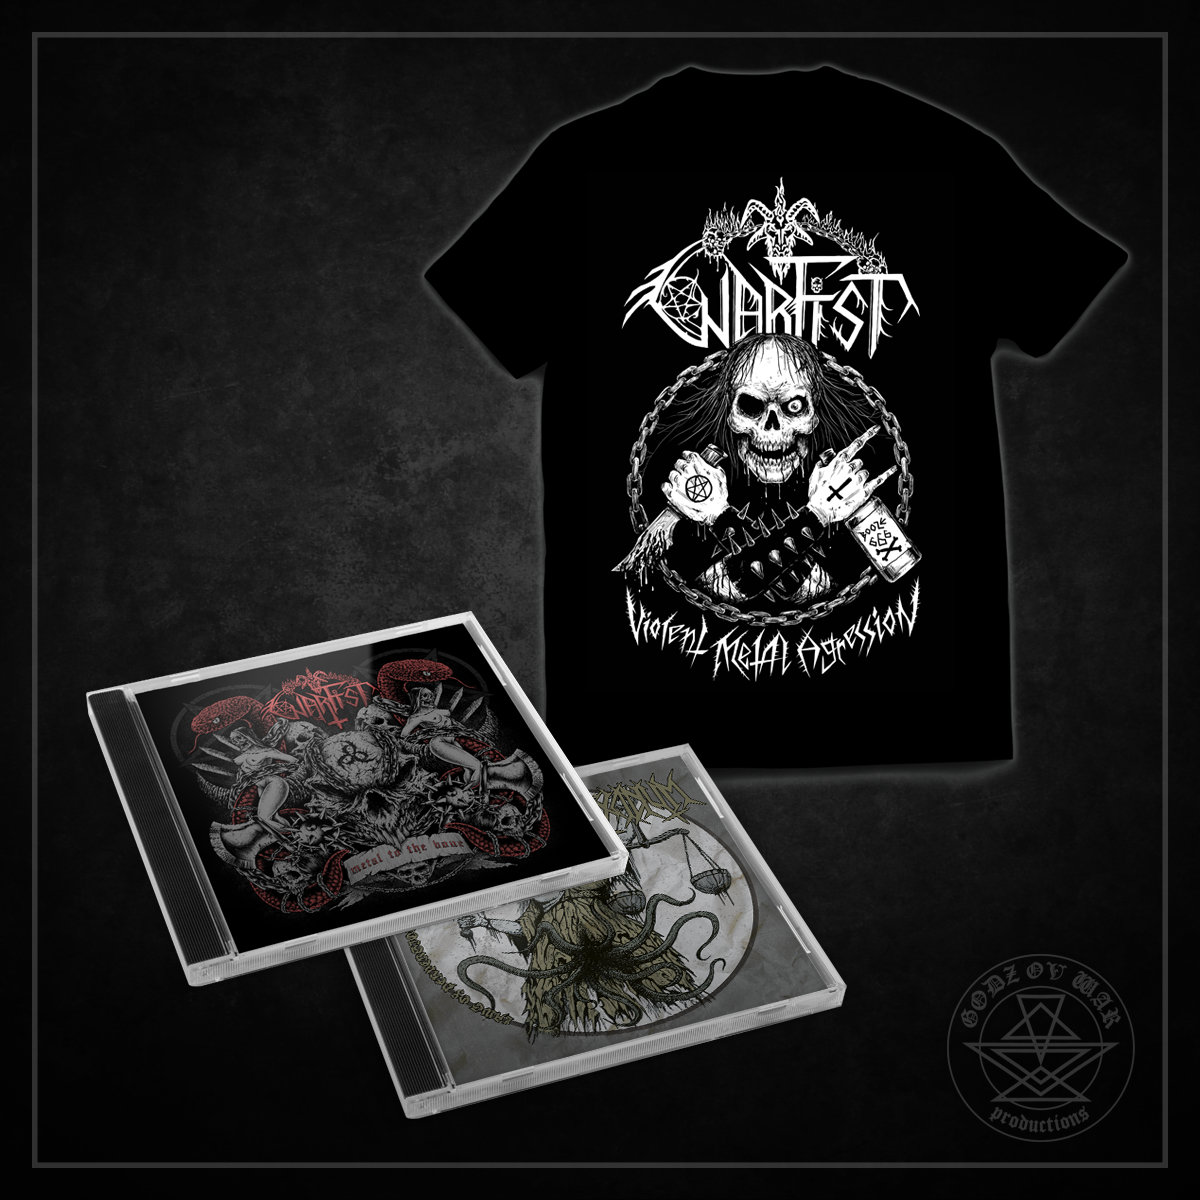 5e976103a Bundle includes both WARFIST releases - Metal to the Bone (jewel case),  Laws of Perversion & Filth split with EXCIDIUM (jewel case) & T-shirt.